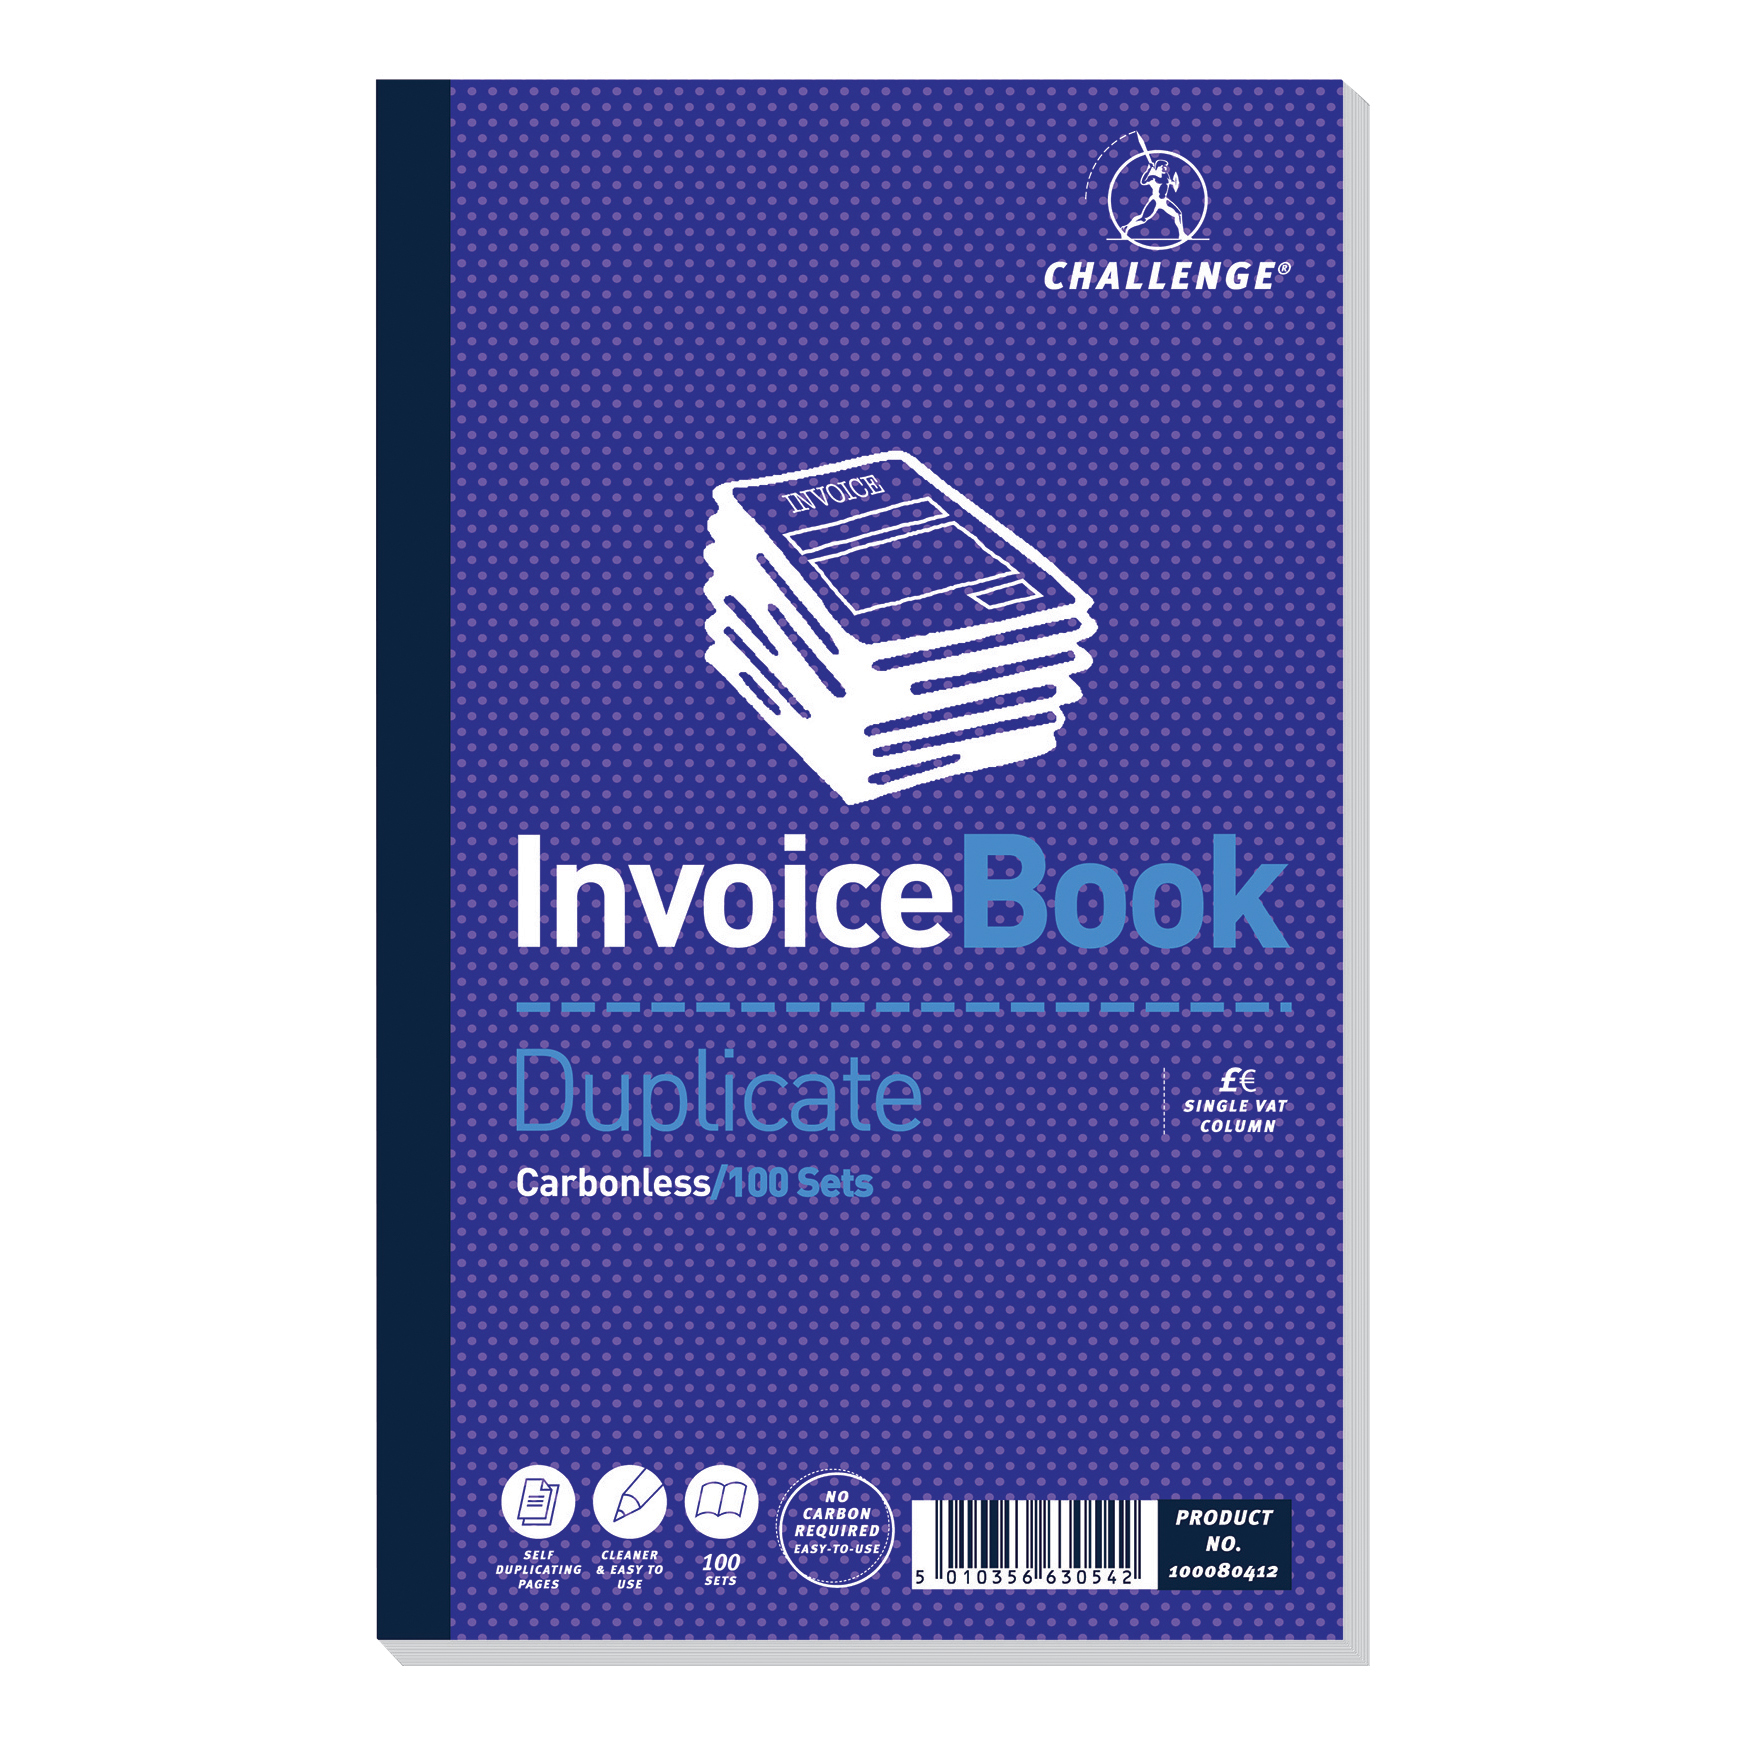 Duplicate Challenge Duplicate Book Carbonless Invoice Single VAT/Tax 100 Sets 210x130mm Ref 100080412 [Pack 5]